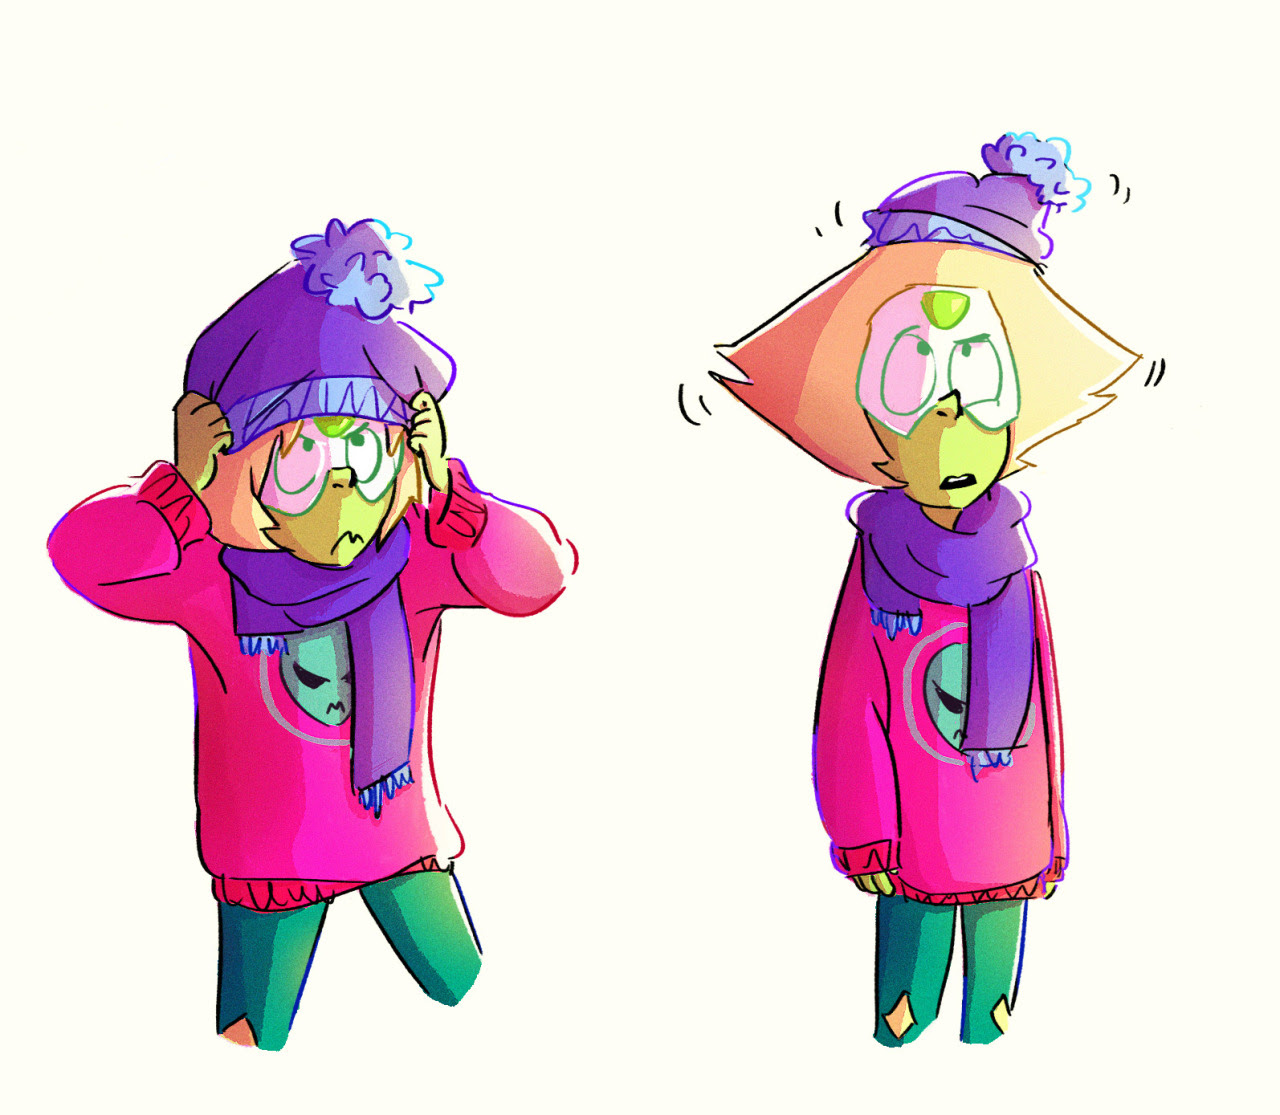 I really love drawing Peri. She is so cute and small.